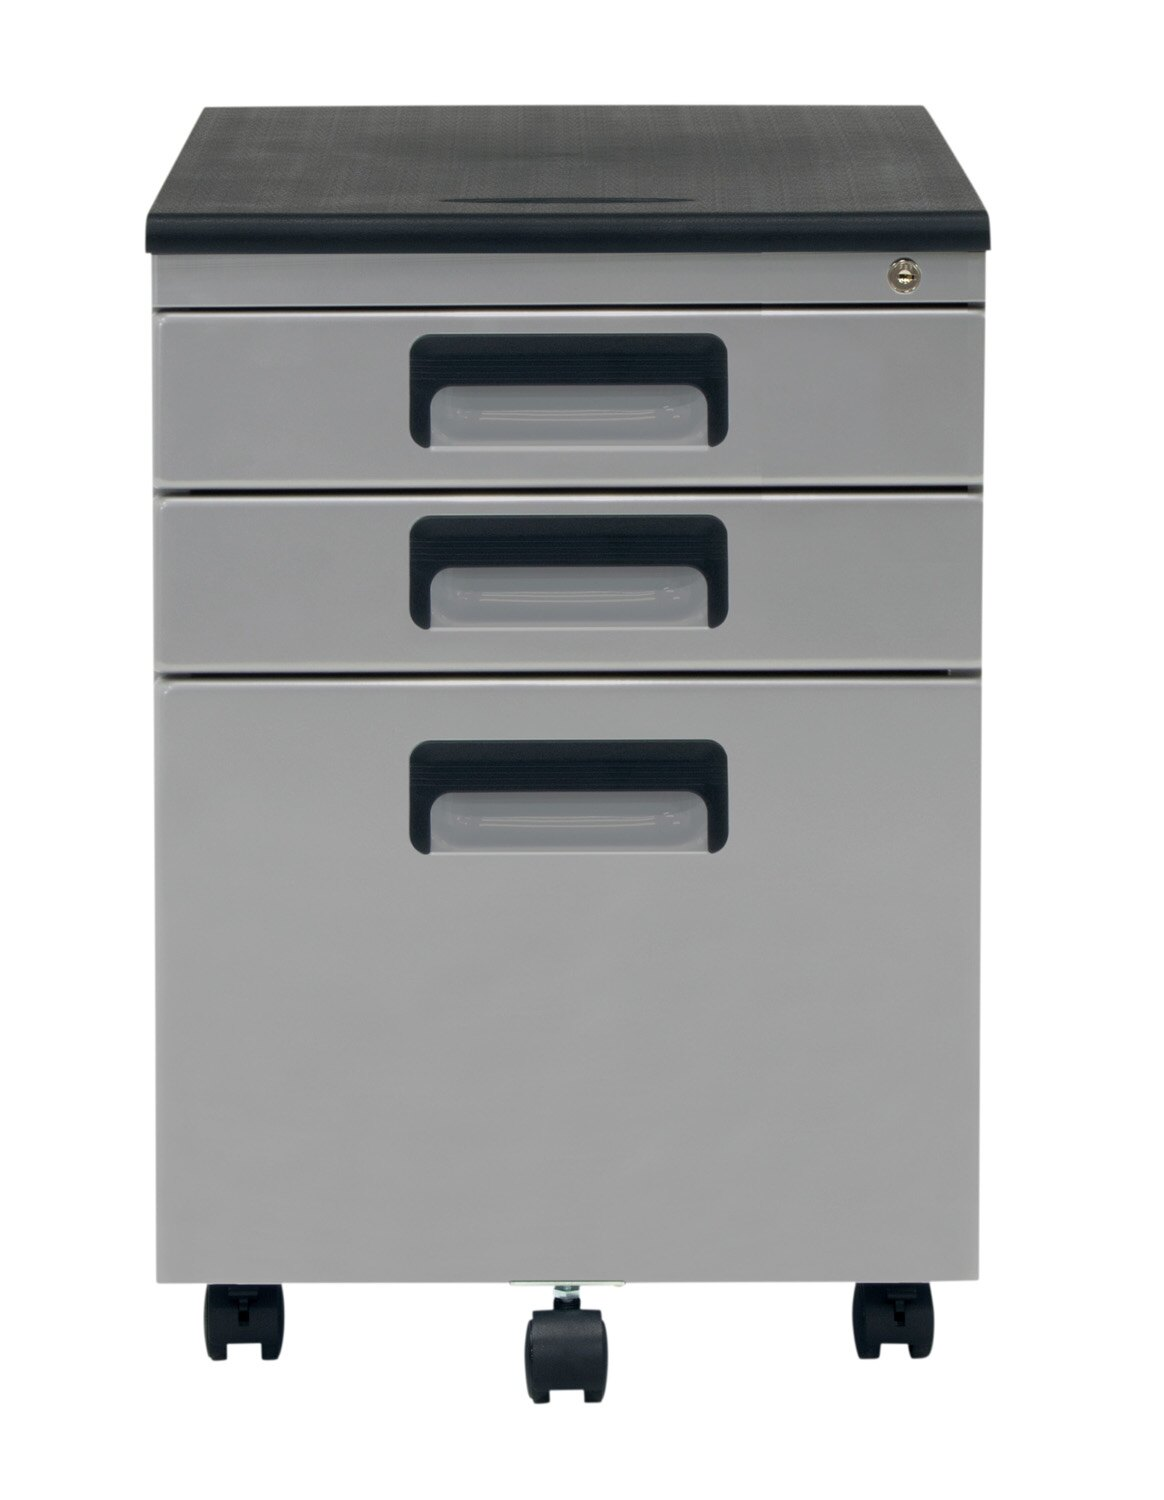 Offex 3 Drawer Metal Rolling File Cabinet With Locking Drawers Silver Black